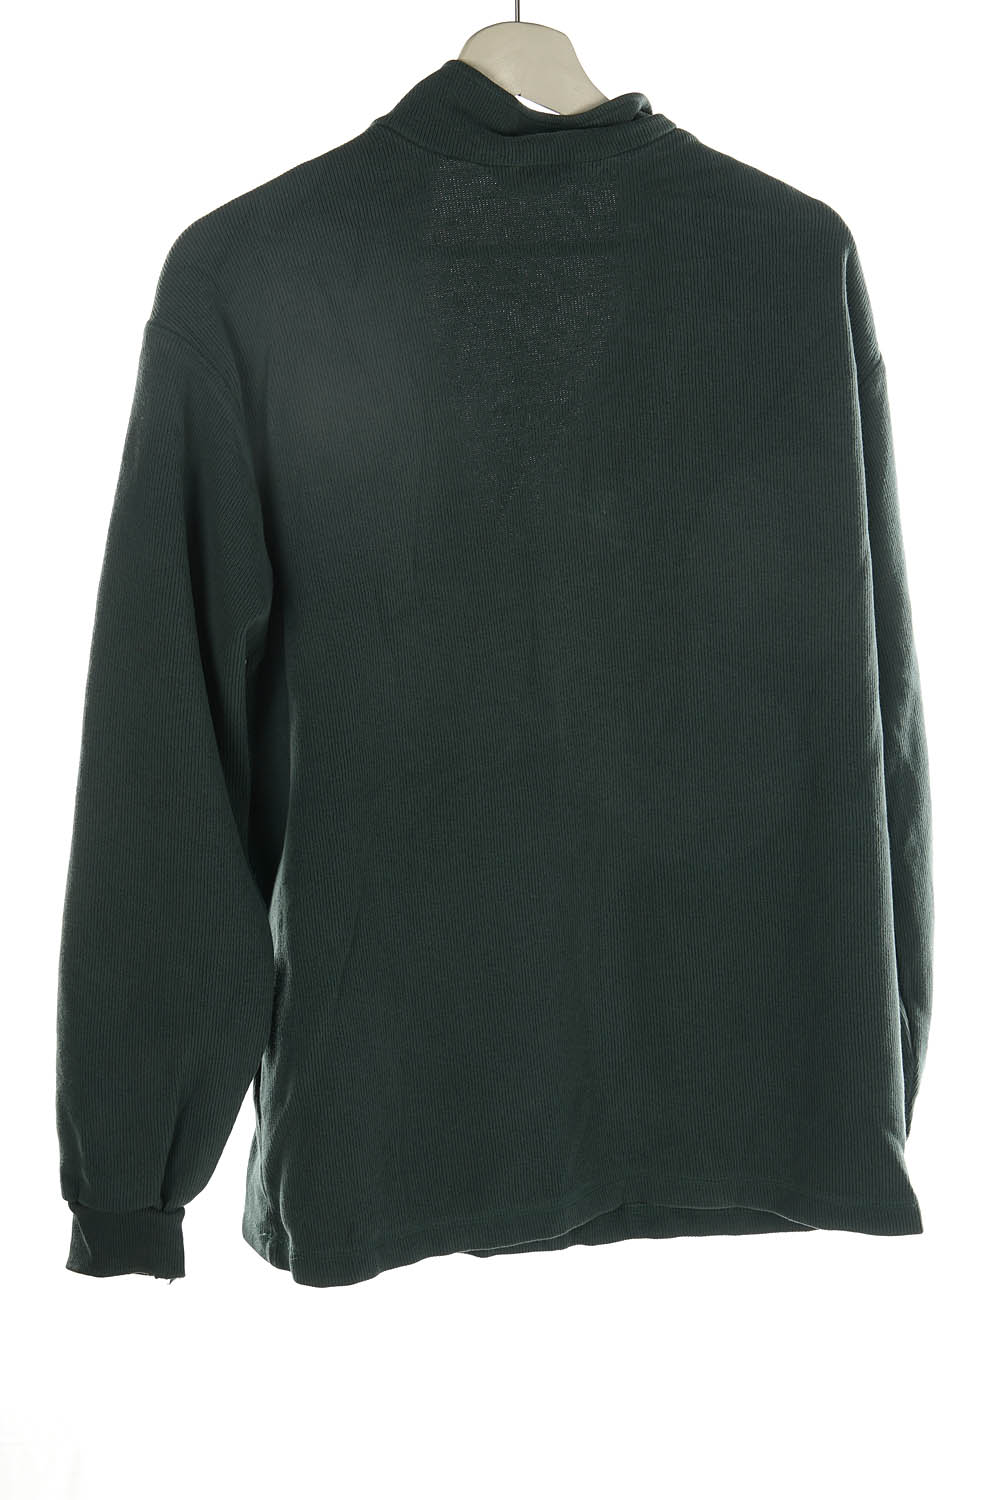 Lands End Pullover Größe: Oversized